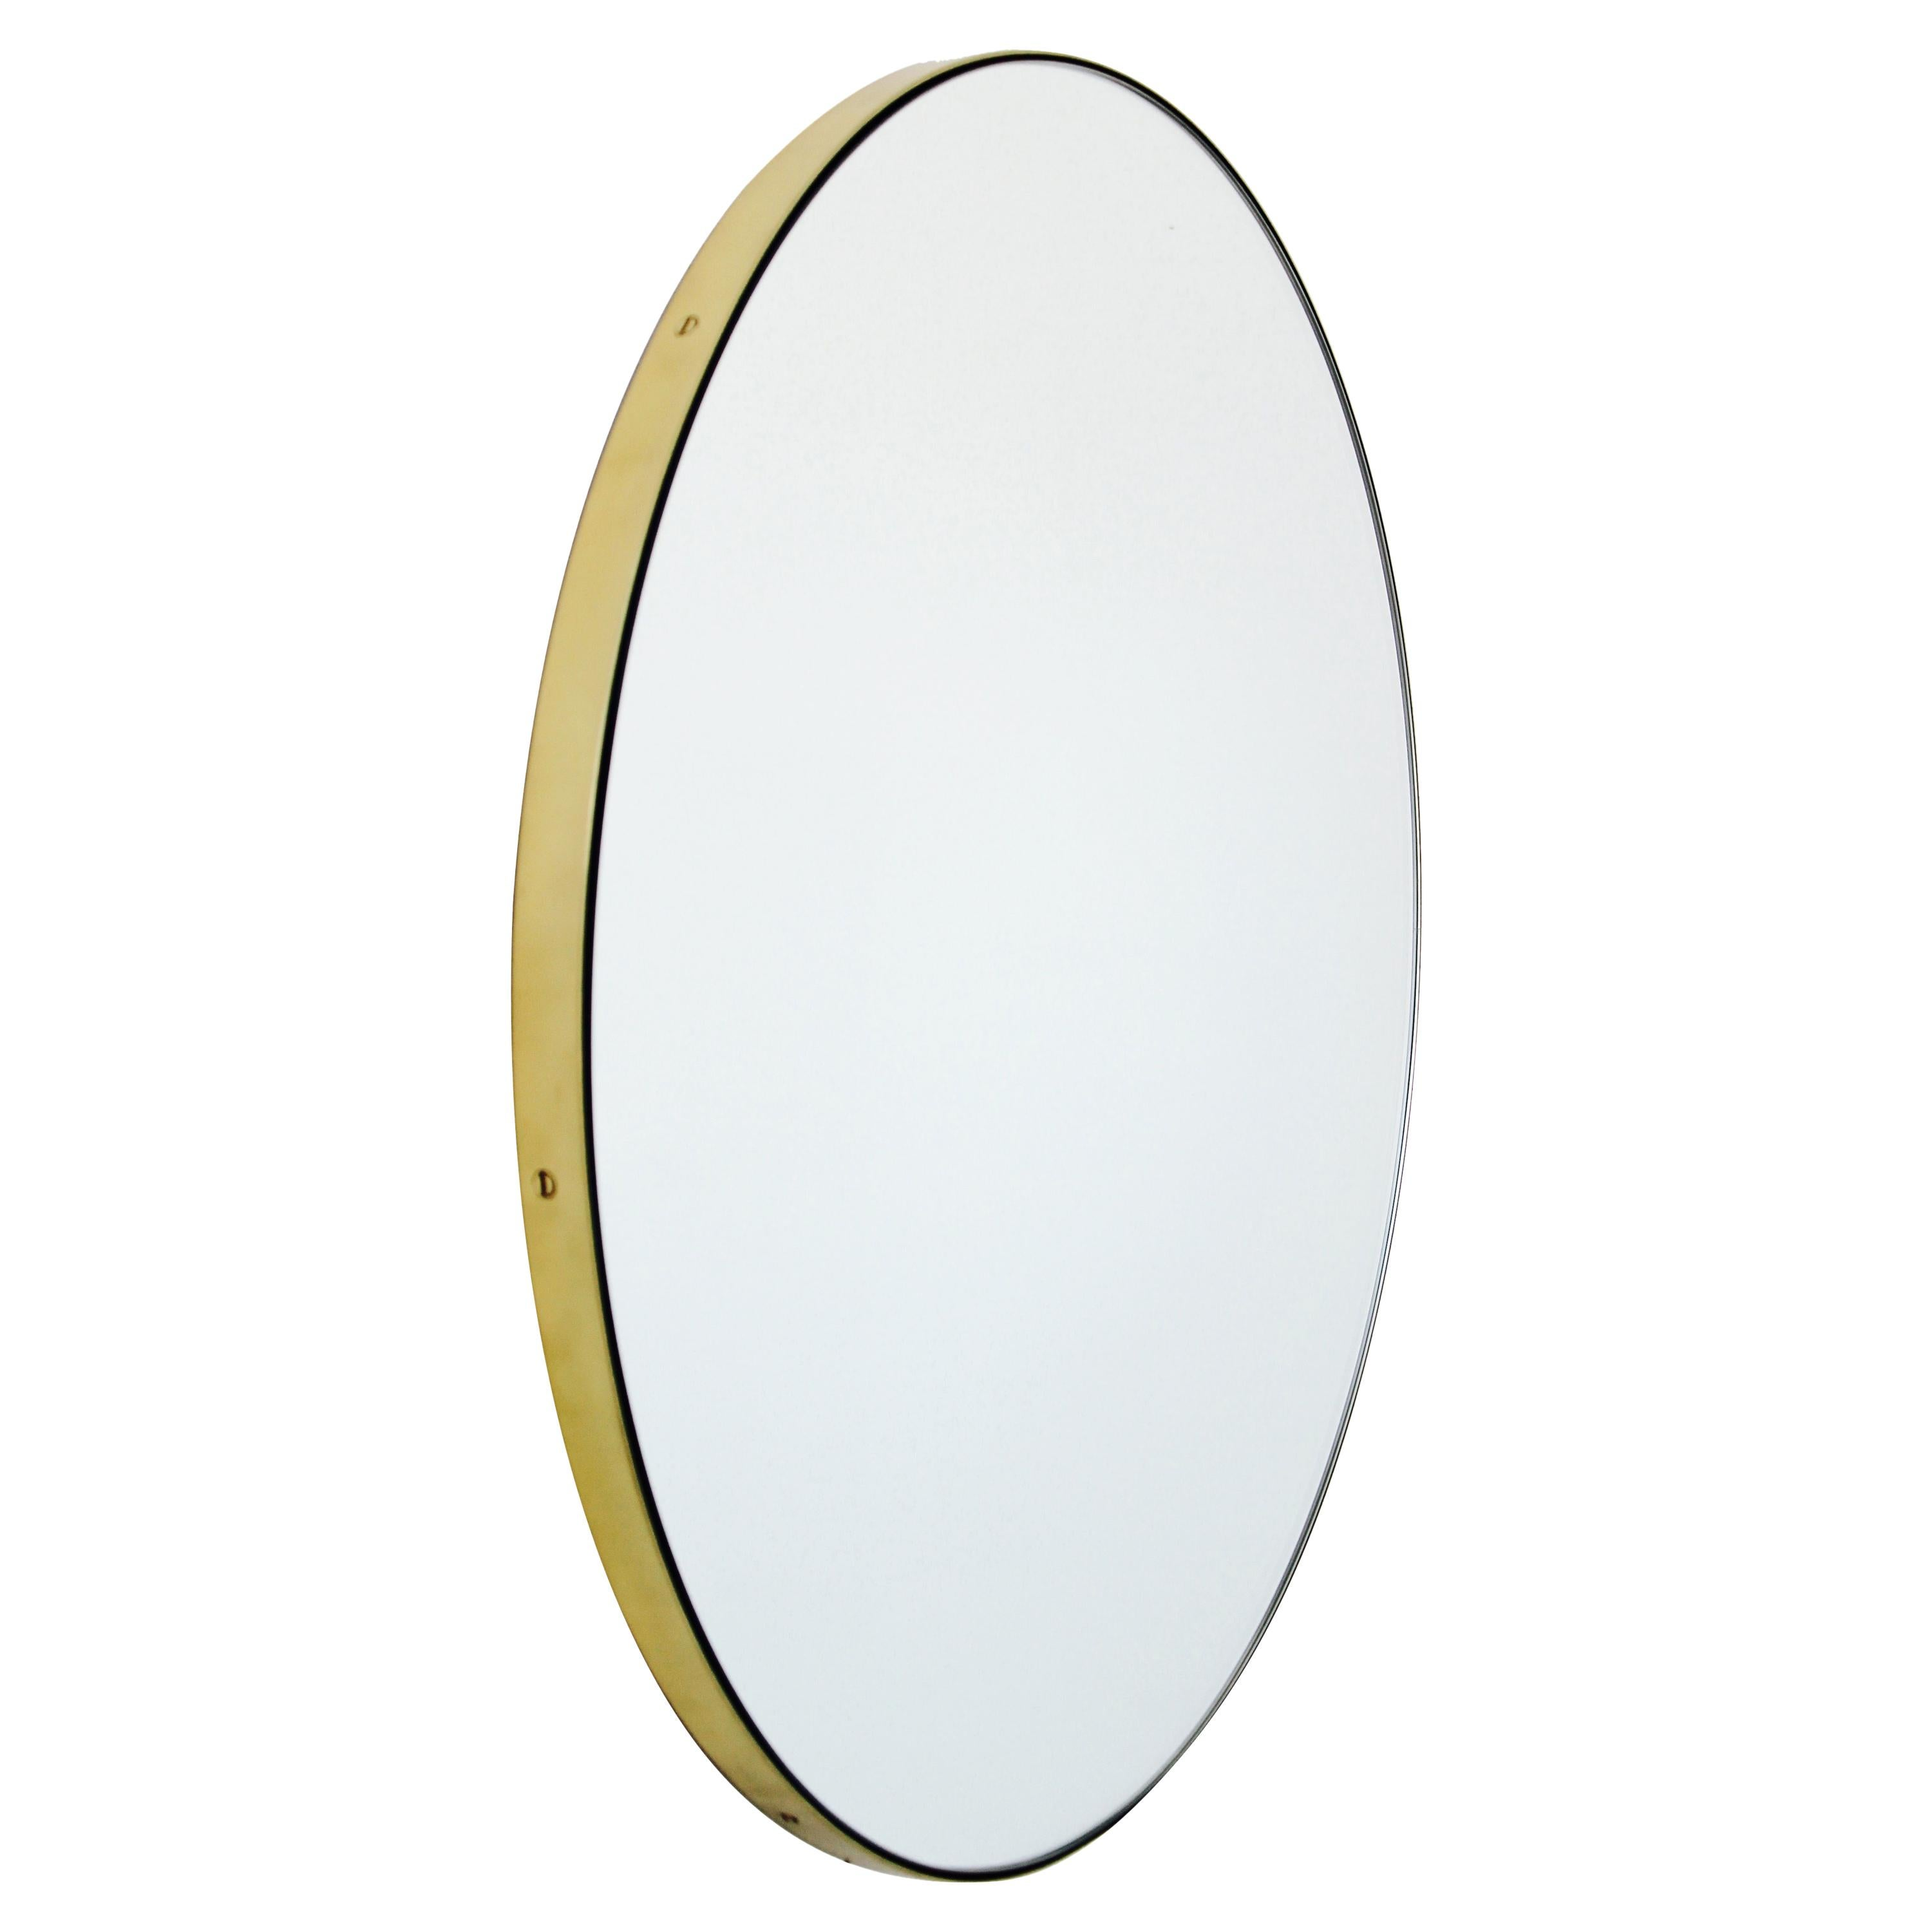 Orbis™ Round Elegant Handcrafted Mirror with Brass Frame - Extra Large